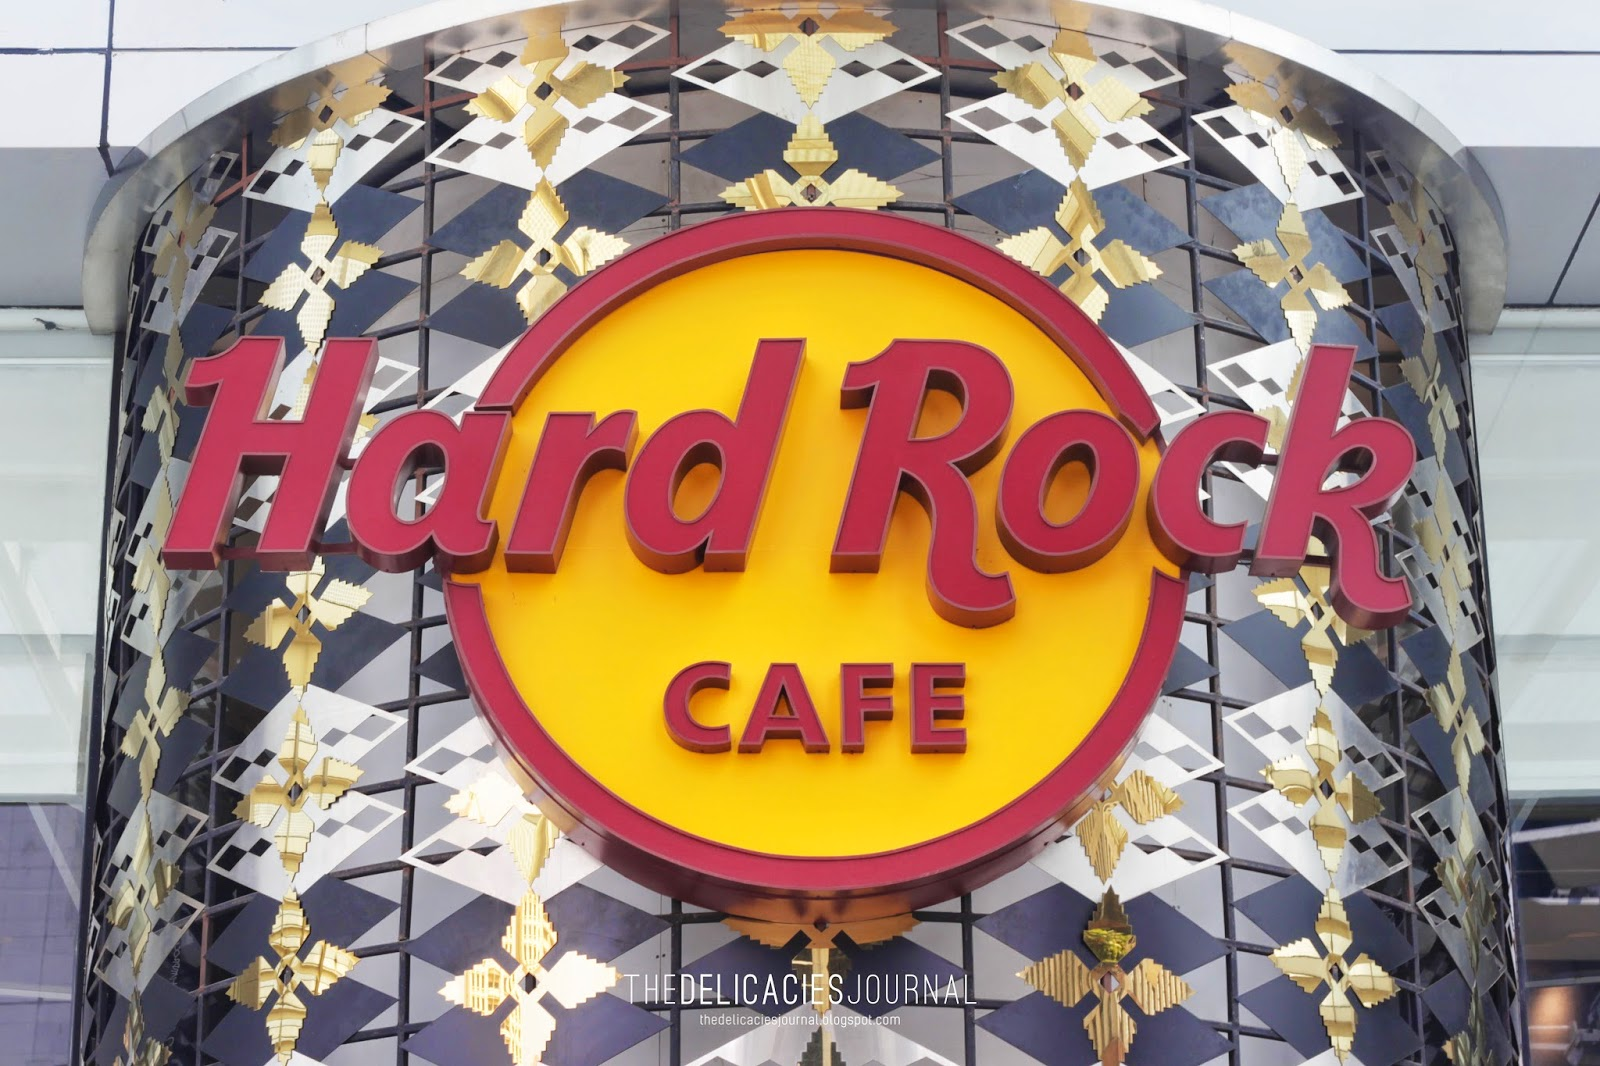 Design t shirt hard rock cafe - The Legendary Burger Lovers Rushed To The Hard Rock Caf Jakarta Today The Hard Rock Caf Will Celebrate Their Birthday With A Party Of Legendary Burger